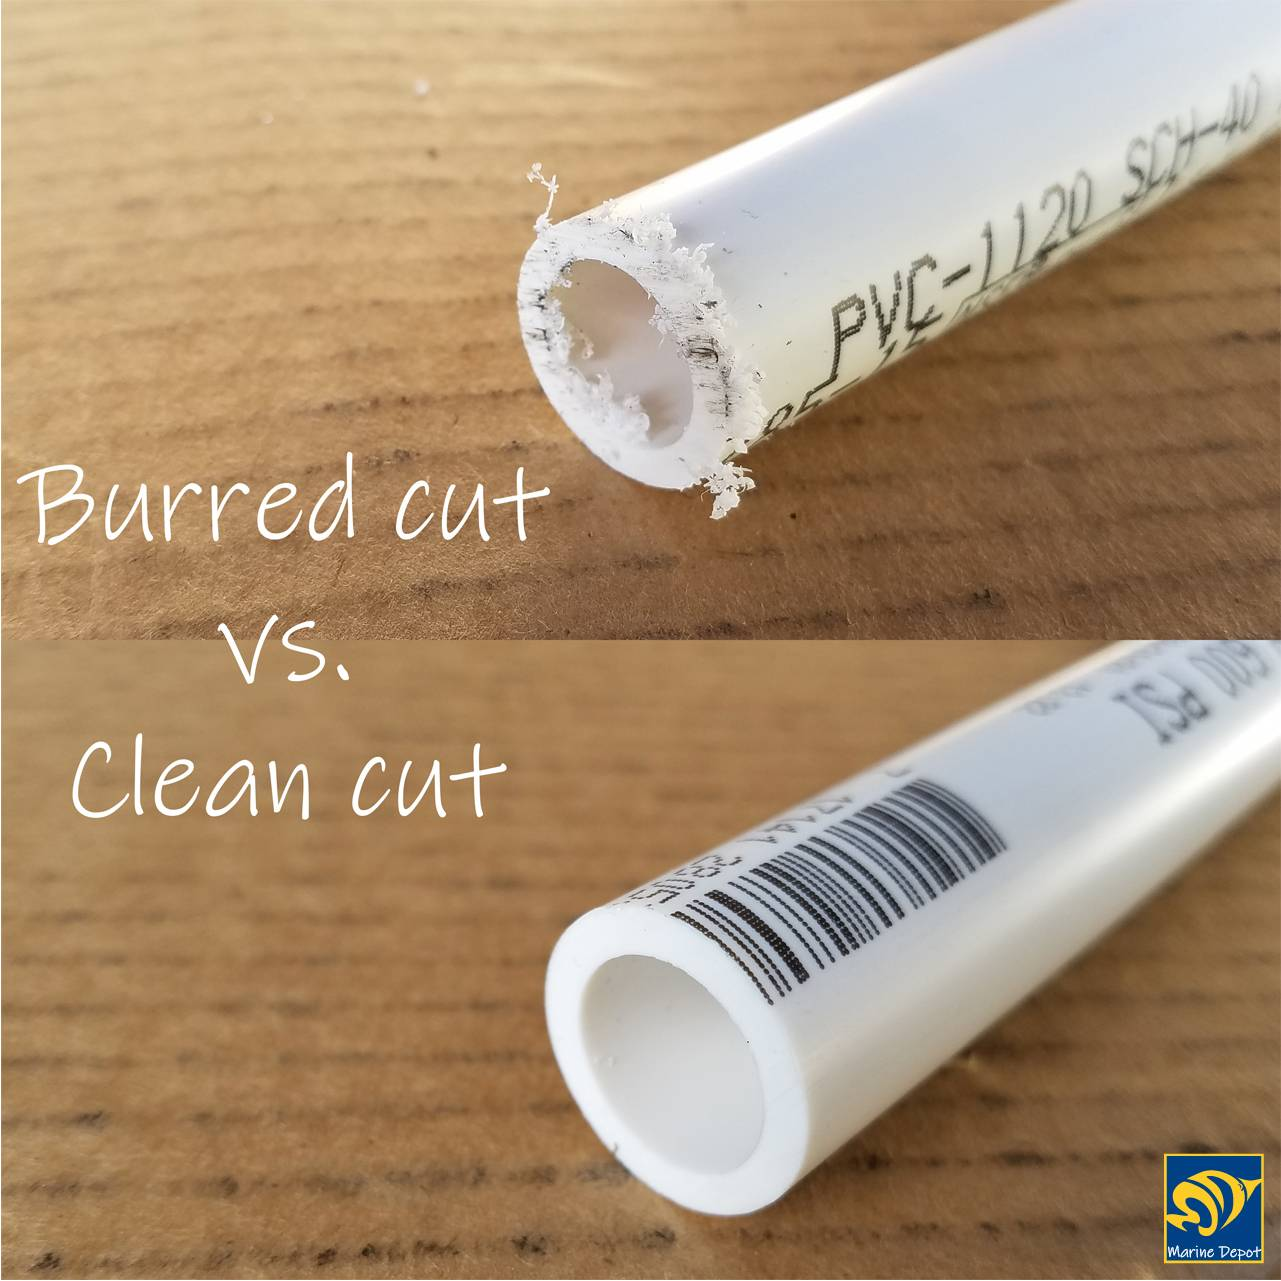 during pipe cutting, the process can create rough edges which need to be cleaned up